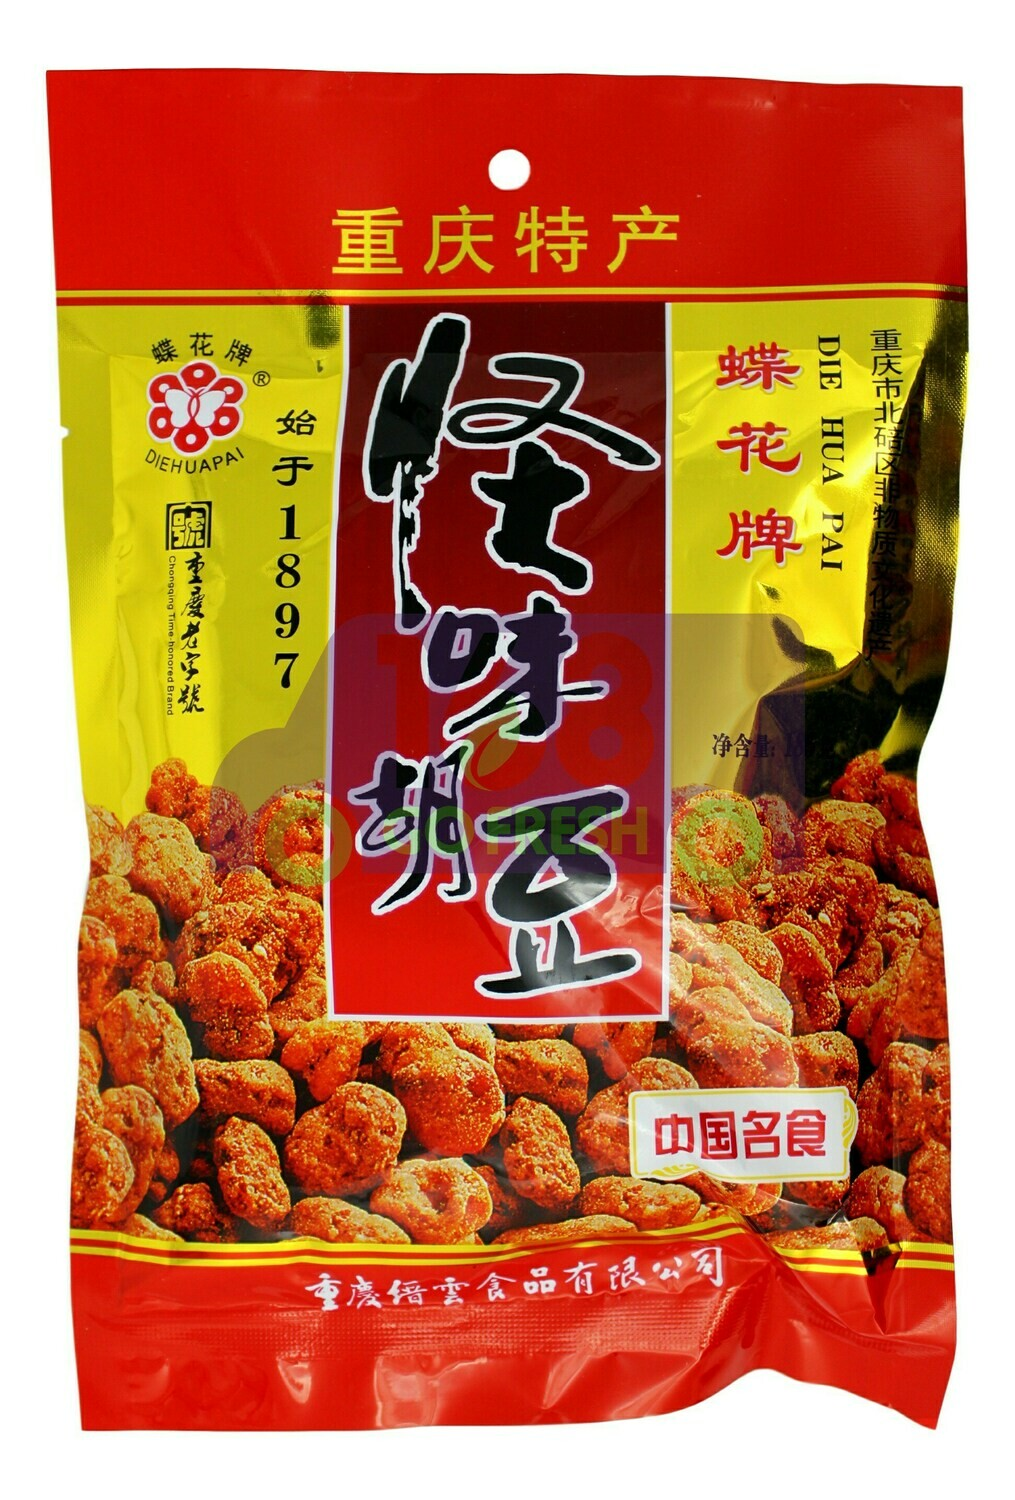 DH SPECIAL BROD BEAN 蝶花牌 怪味胡豆(185G)